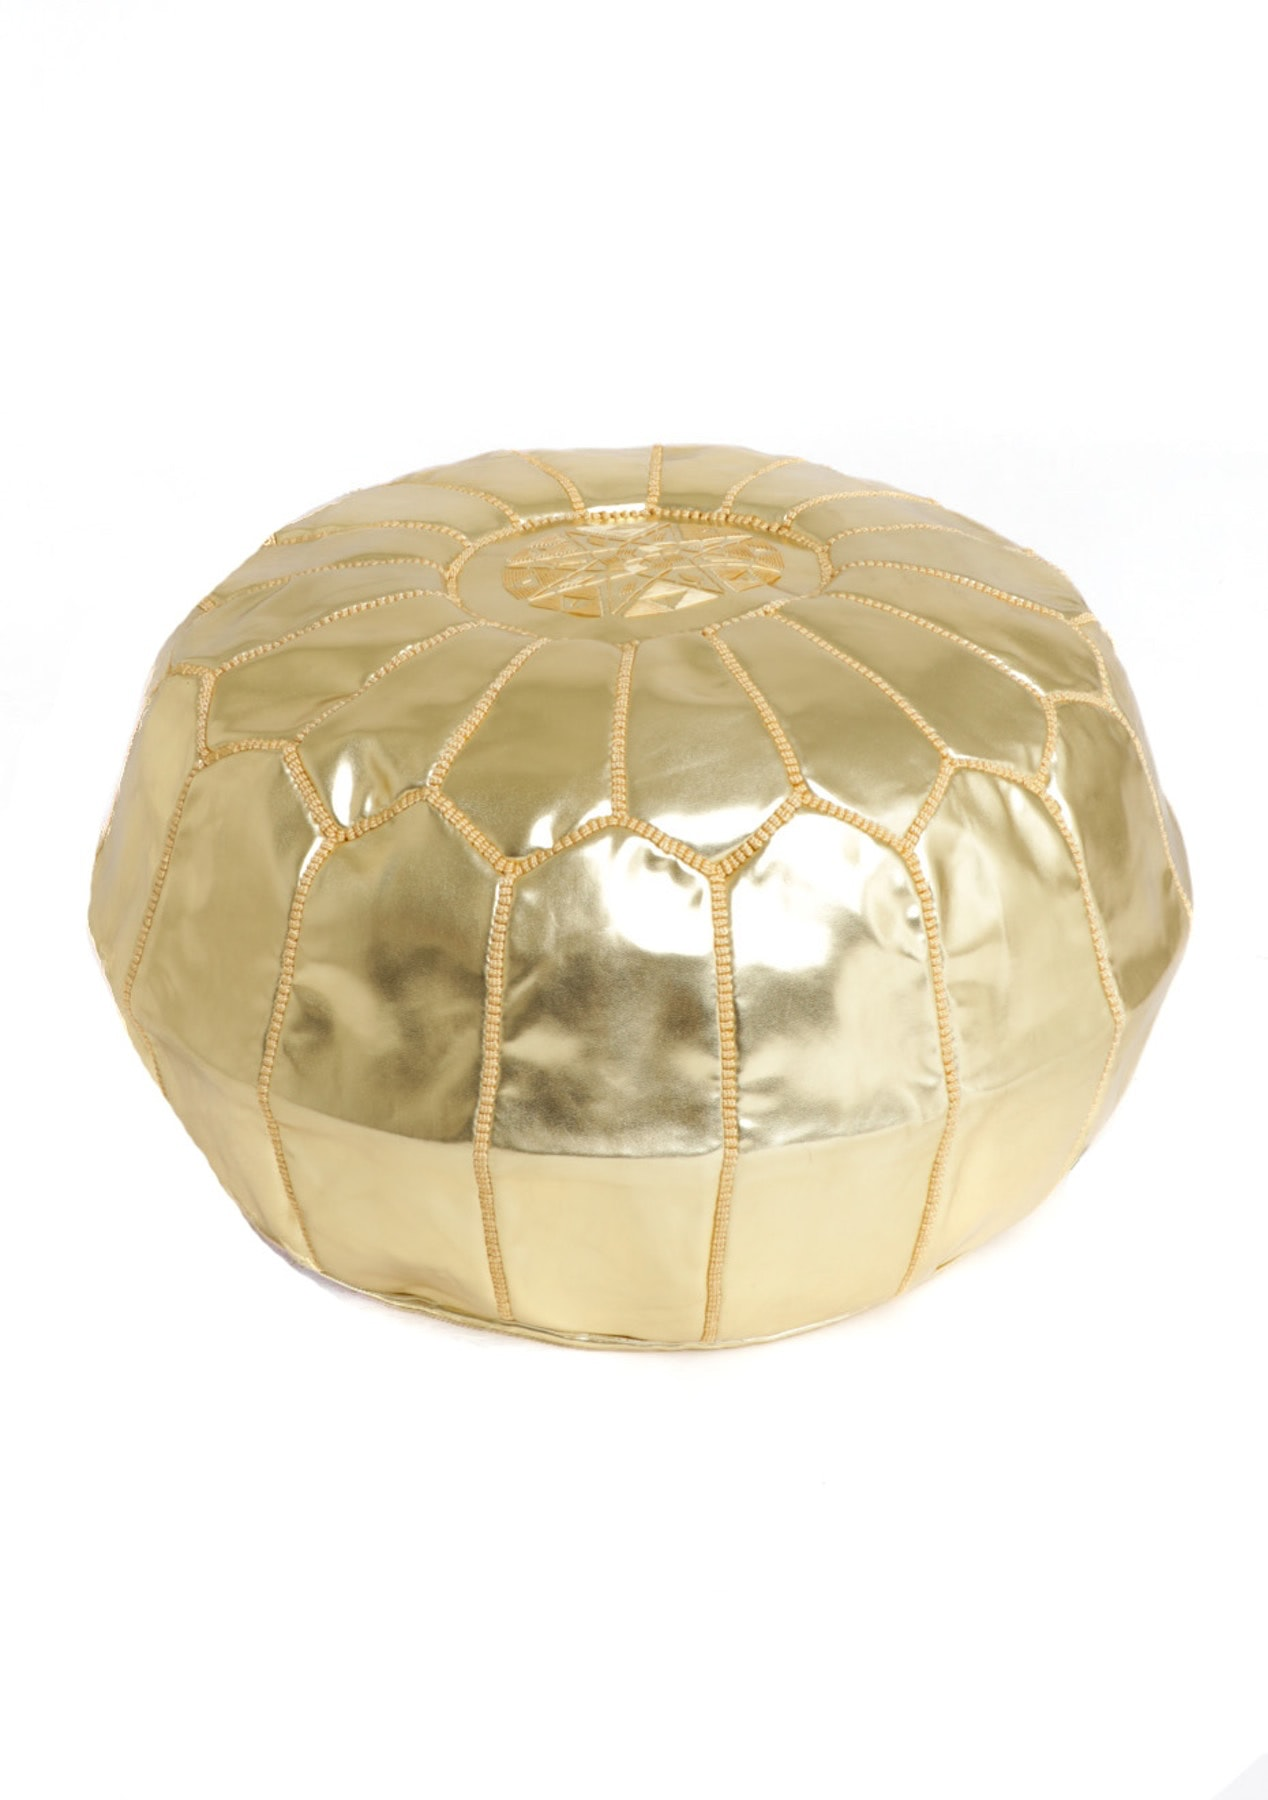 Faux Leather Metallic Moroccan Pouf - Gold